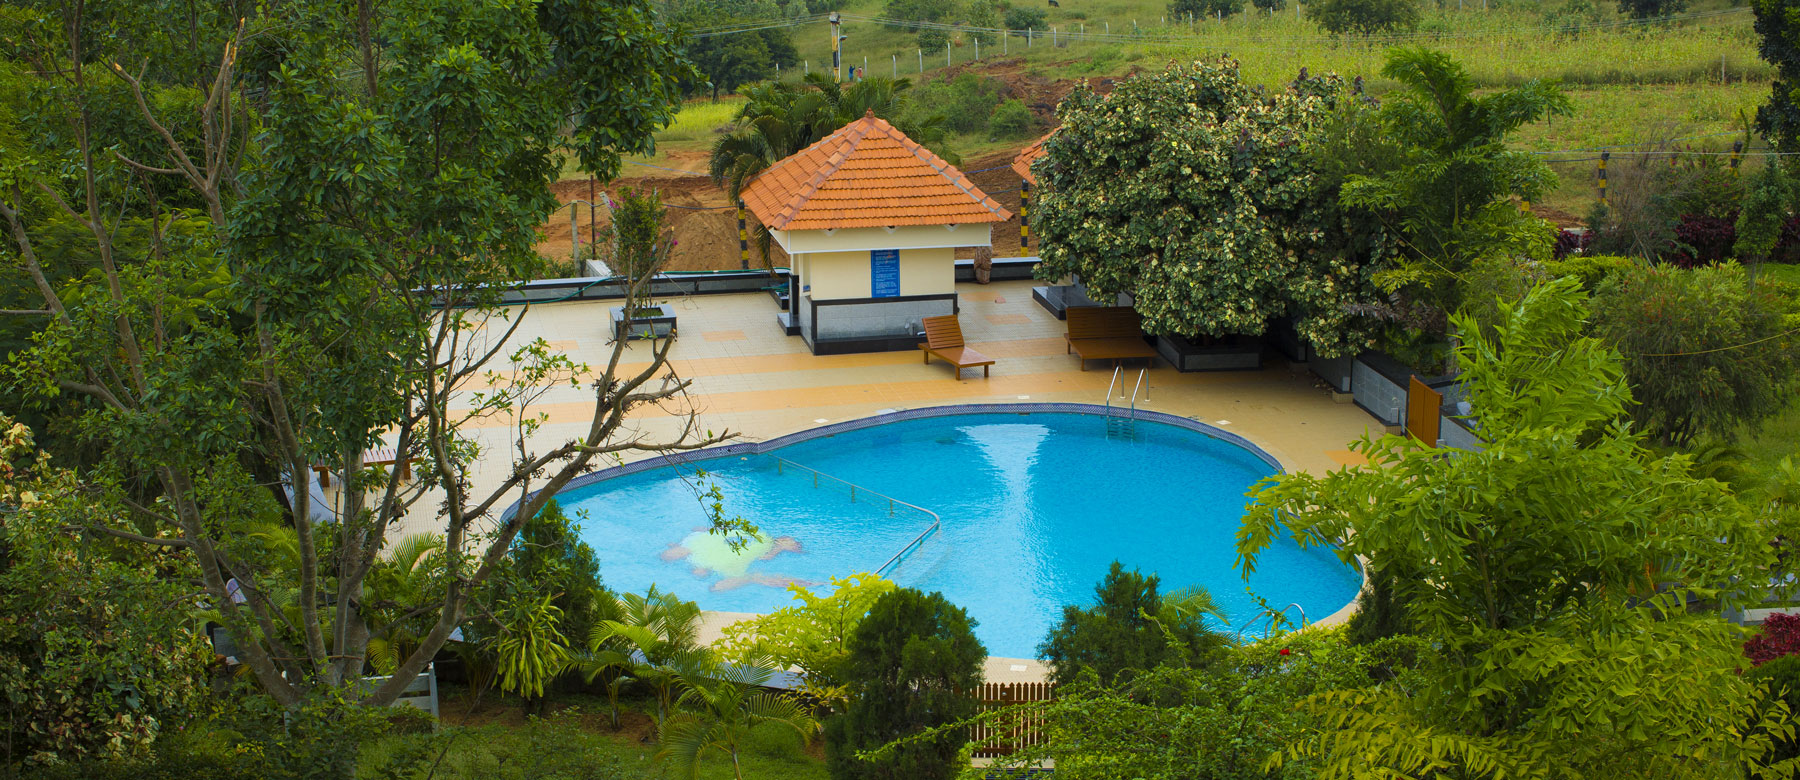 Farmhouse Near Bangalore Farm Land In Bangalore Farm Land For Sale In Hosur